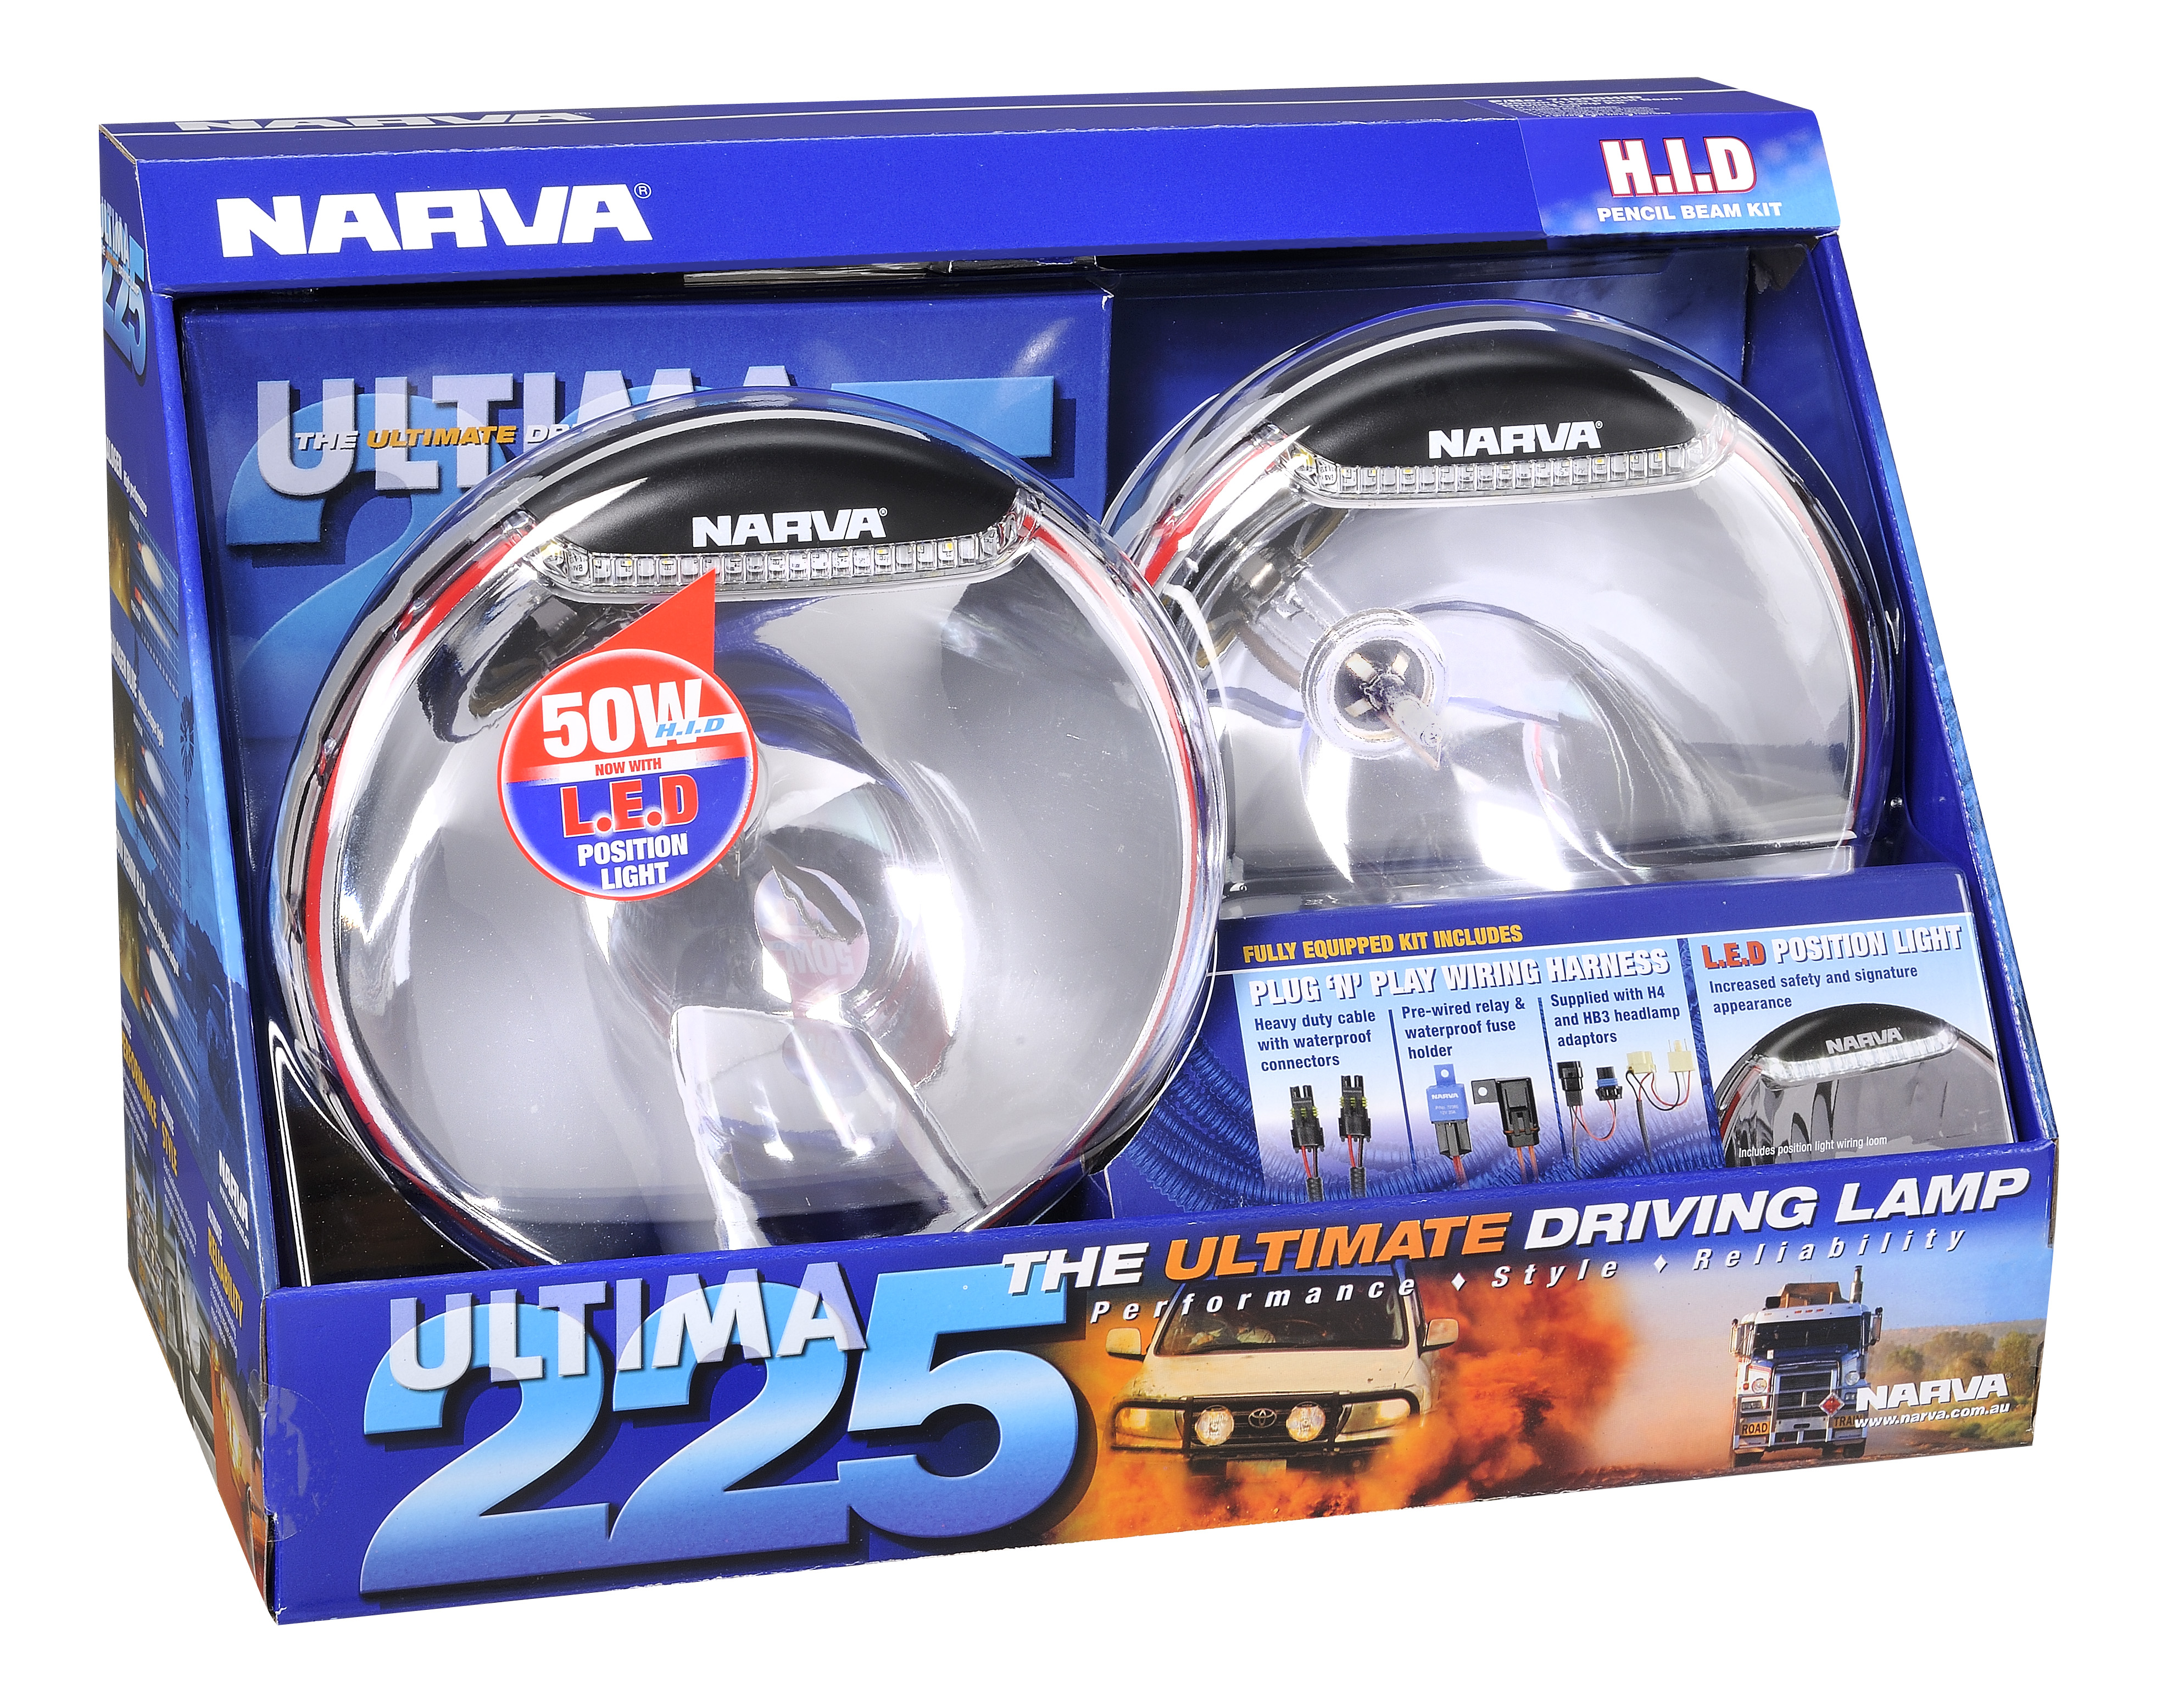 Narva Ultima 225 Hid Pencil Beam Driving Lamp Kit 24v 50w 71680hid Wiring Harness Image Is Loading